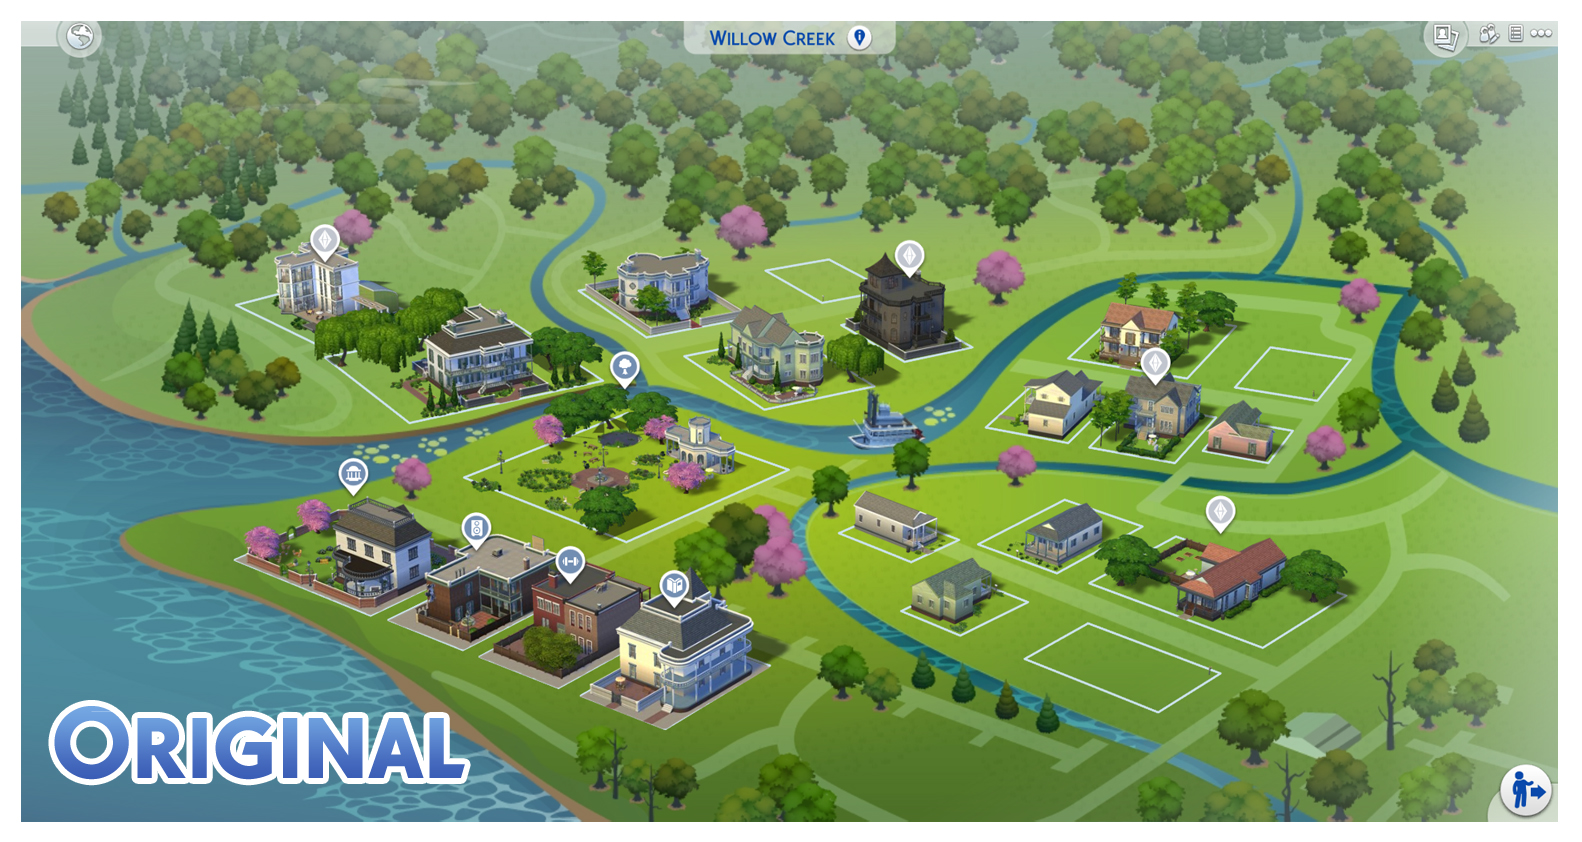 sims castaway, sims 3 houses, sims 3 university life cover, sims 3 yacht, sims 3 map, sims 3 zombie apocalypse, sims 3 sunlit tides, sims 3 mods, sims 3 train, sims 3 world's best, sims 3 weather, sims medieval map, on sims 4 map